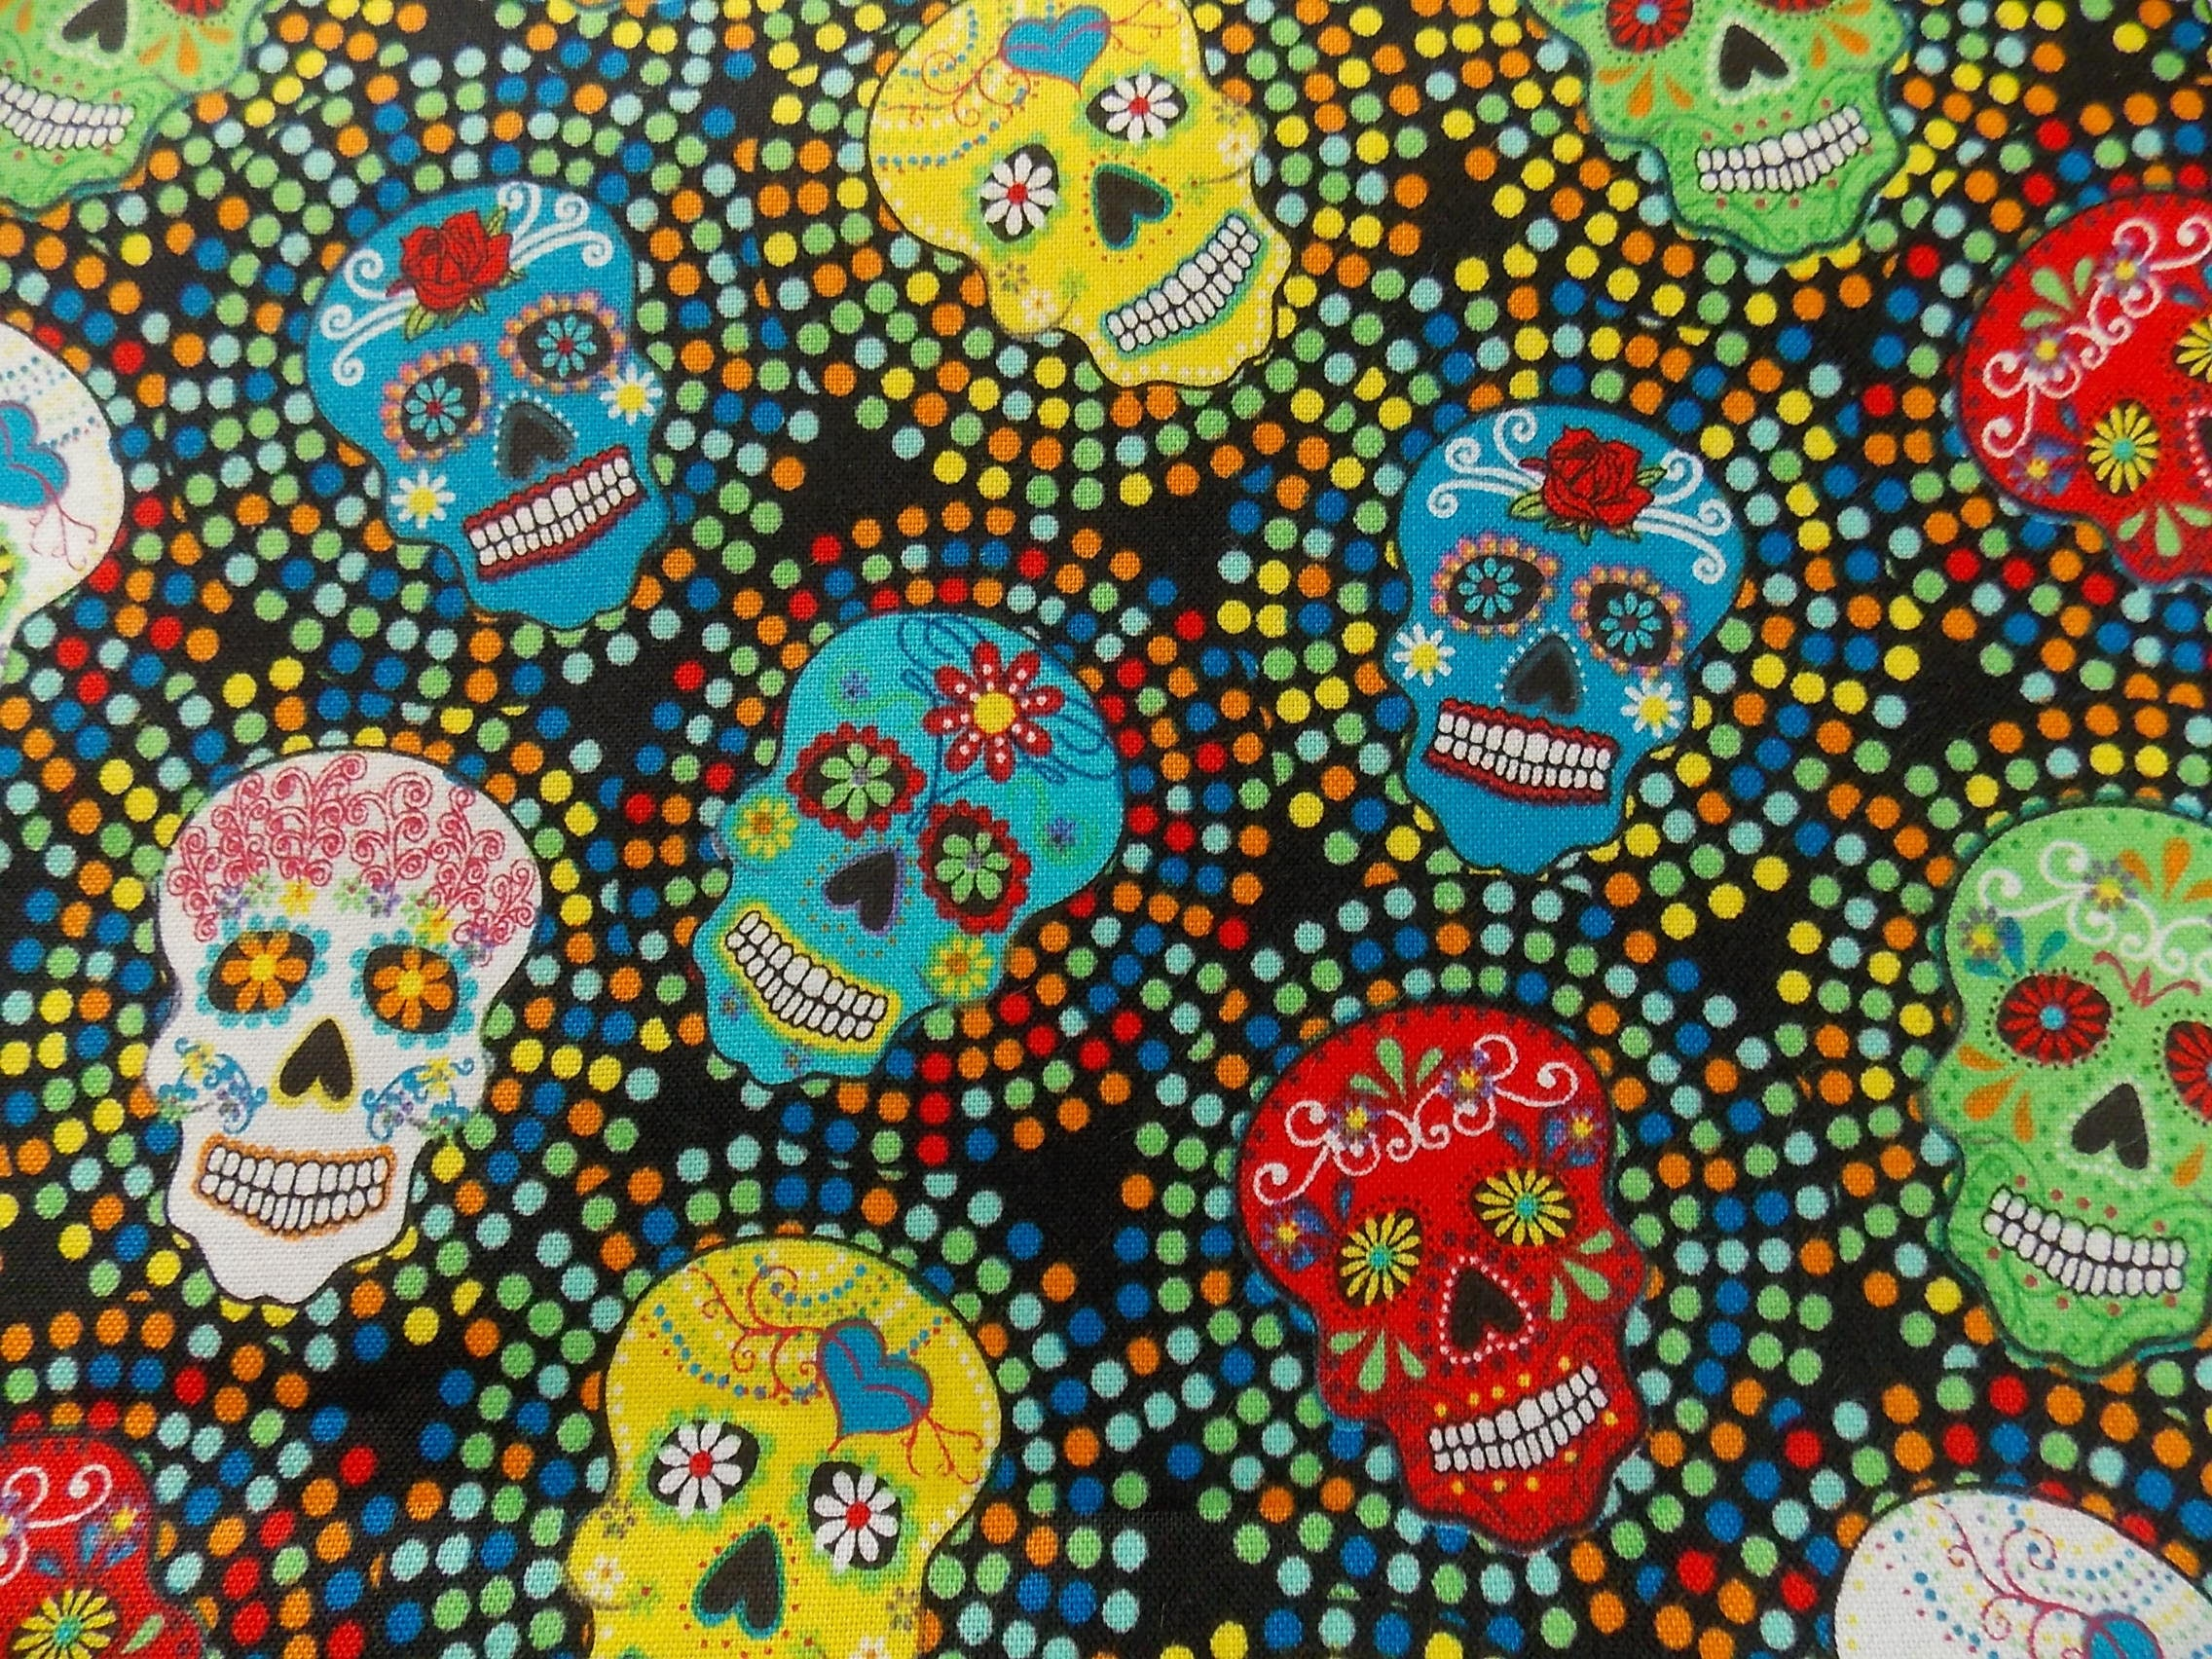 Mexican fabric day of the dead fabric skull fabric cotton for The fabric of